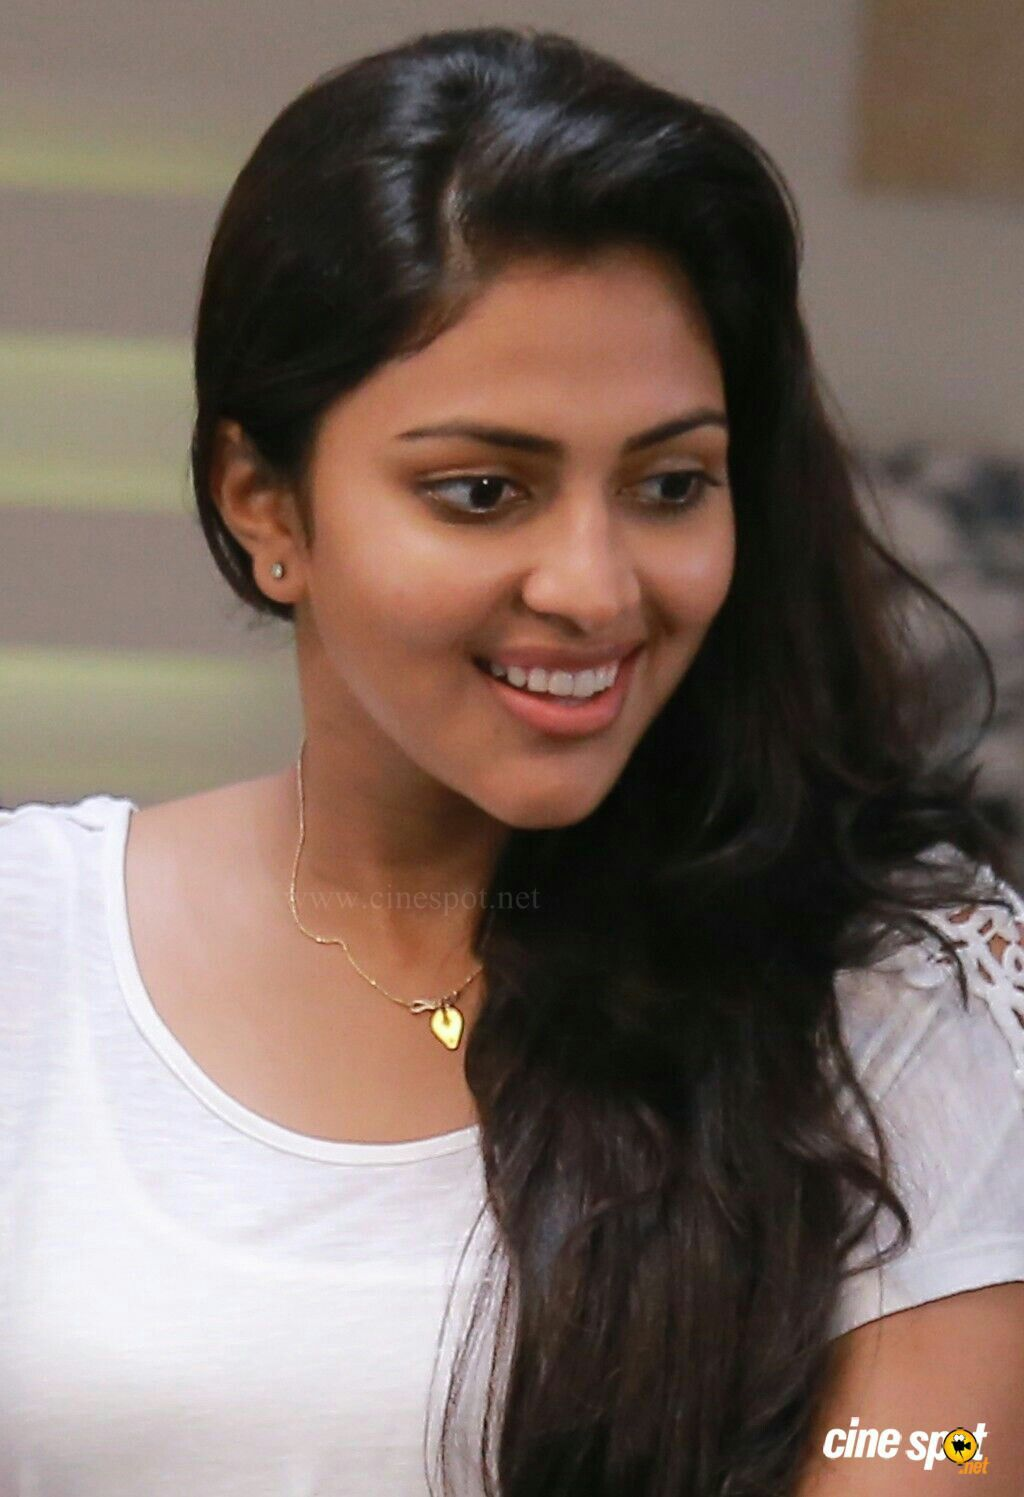 Pin by ks on hd wallpaper pinterest amala paul indian beauty hd wallpaper wallpapers amala paul indian beauty pretty face beautiful models ethnic wallpaper images hd wall papers voltagebd Choice Image